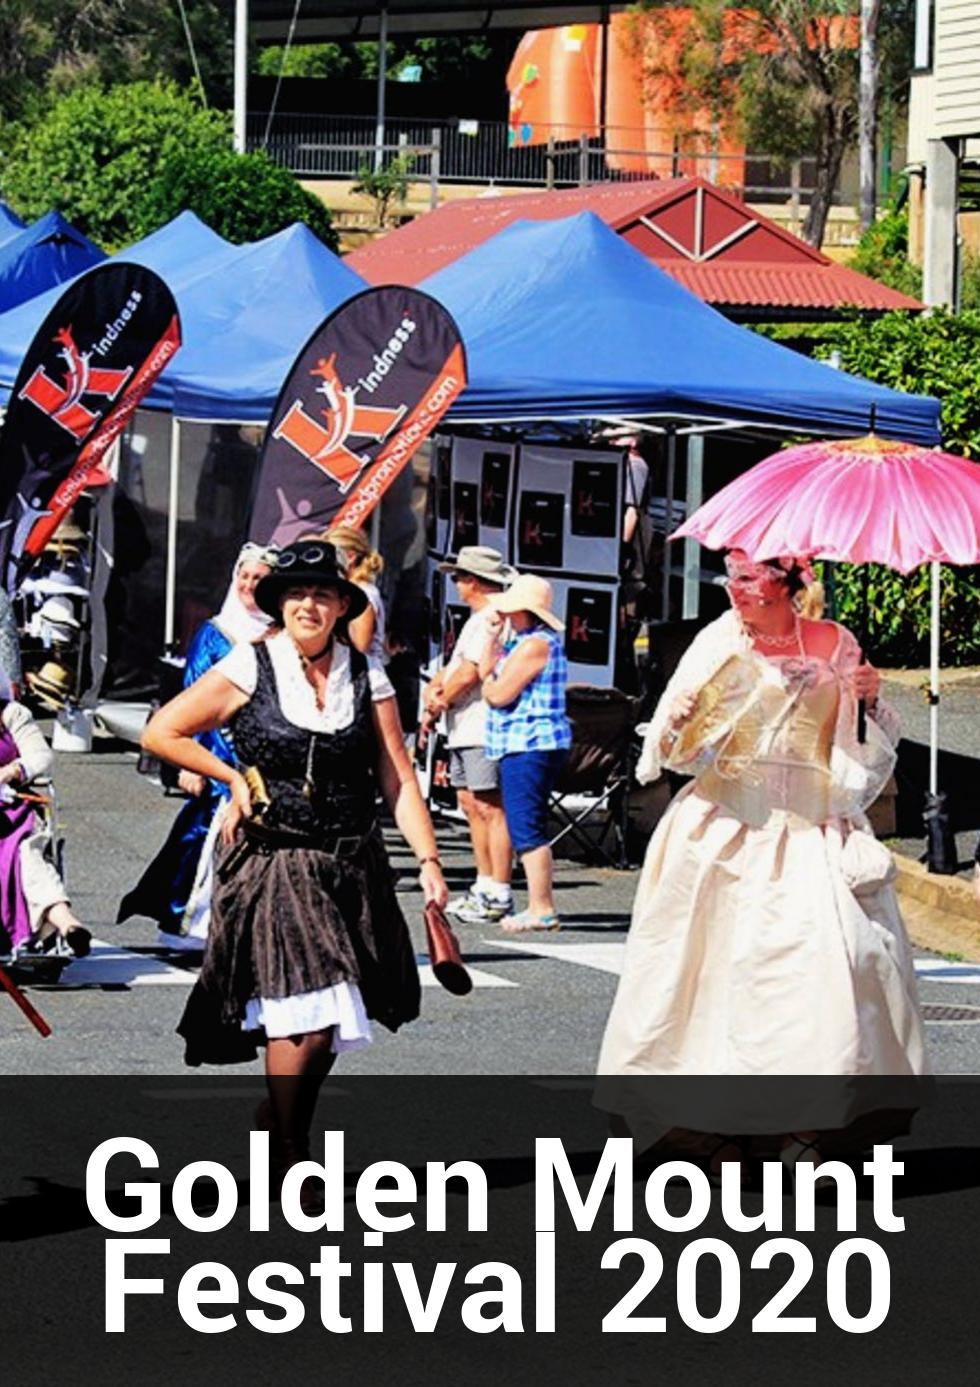 Golden Mount Festival 2020 at Mount Morgan Township